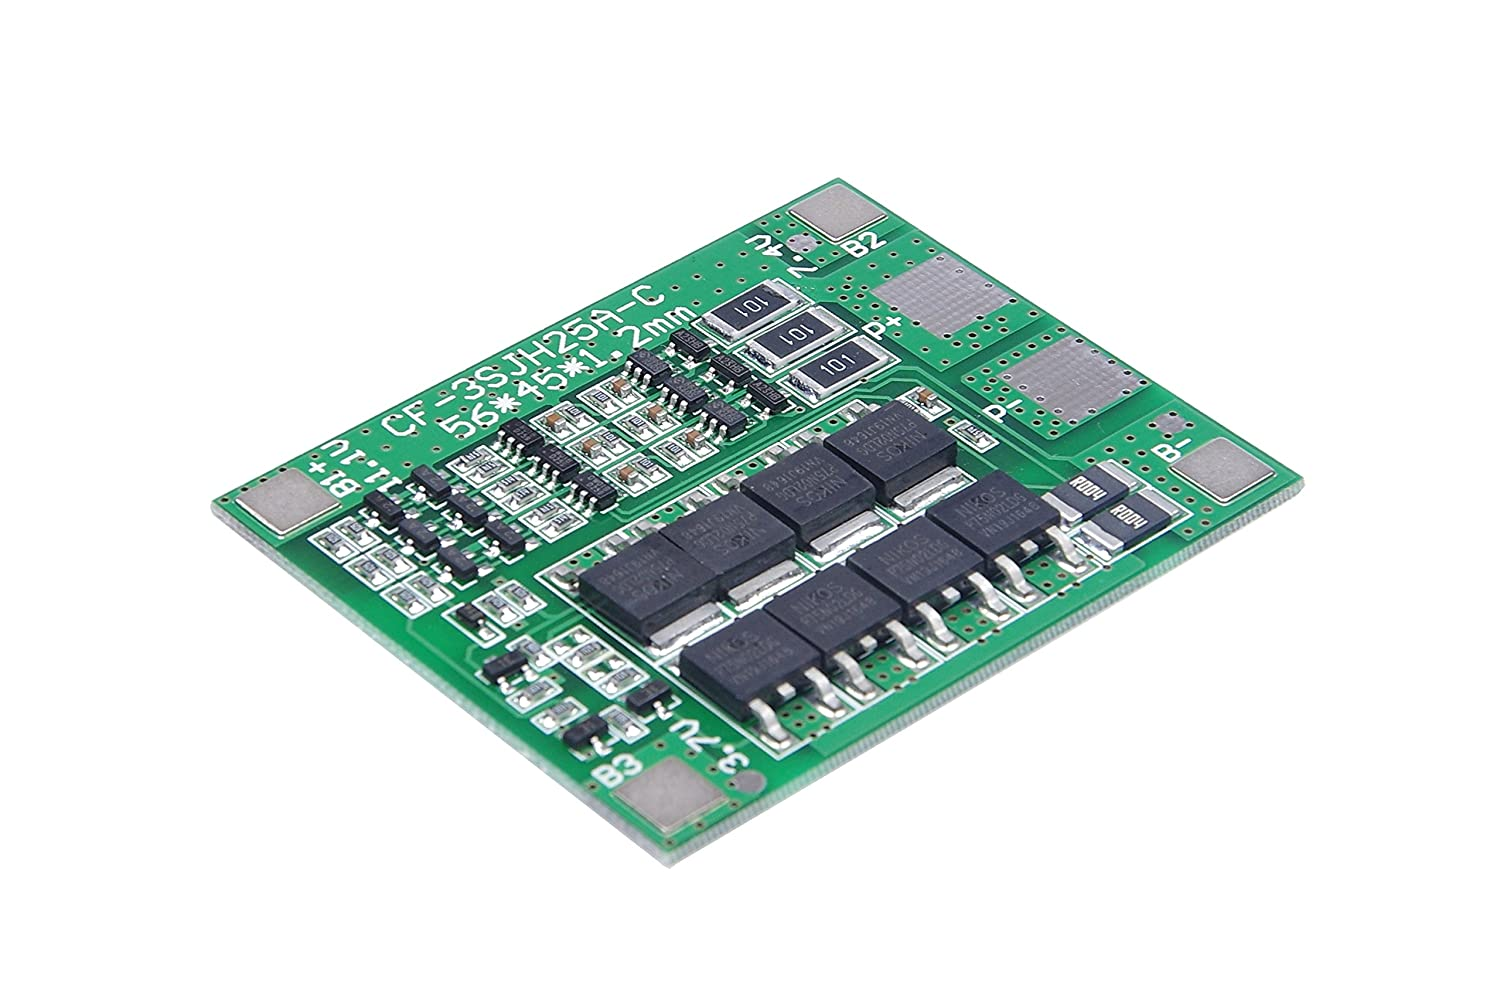 Knacro 3s 37v Lithium Battery Protection Board 25a Max Rechargeable Lithiumion Batteries With Circuit Pcb Balanced For 3 String Electric Toys Ups Home Audio